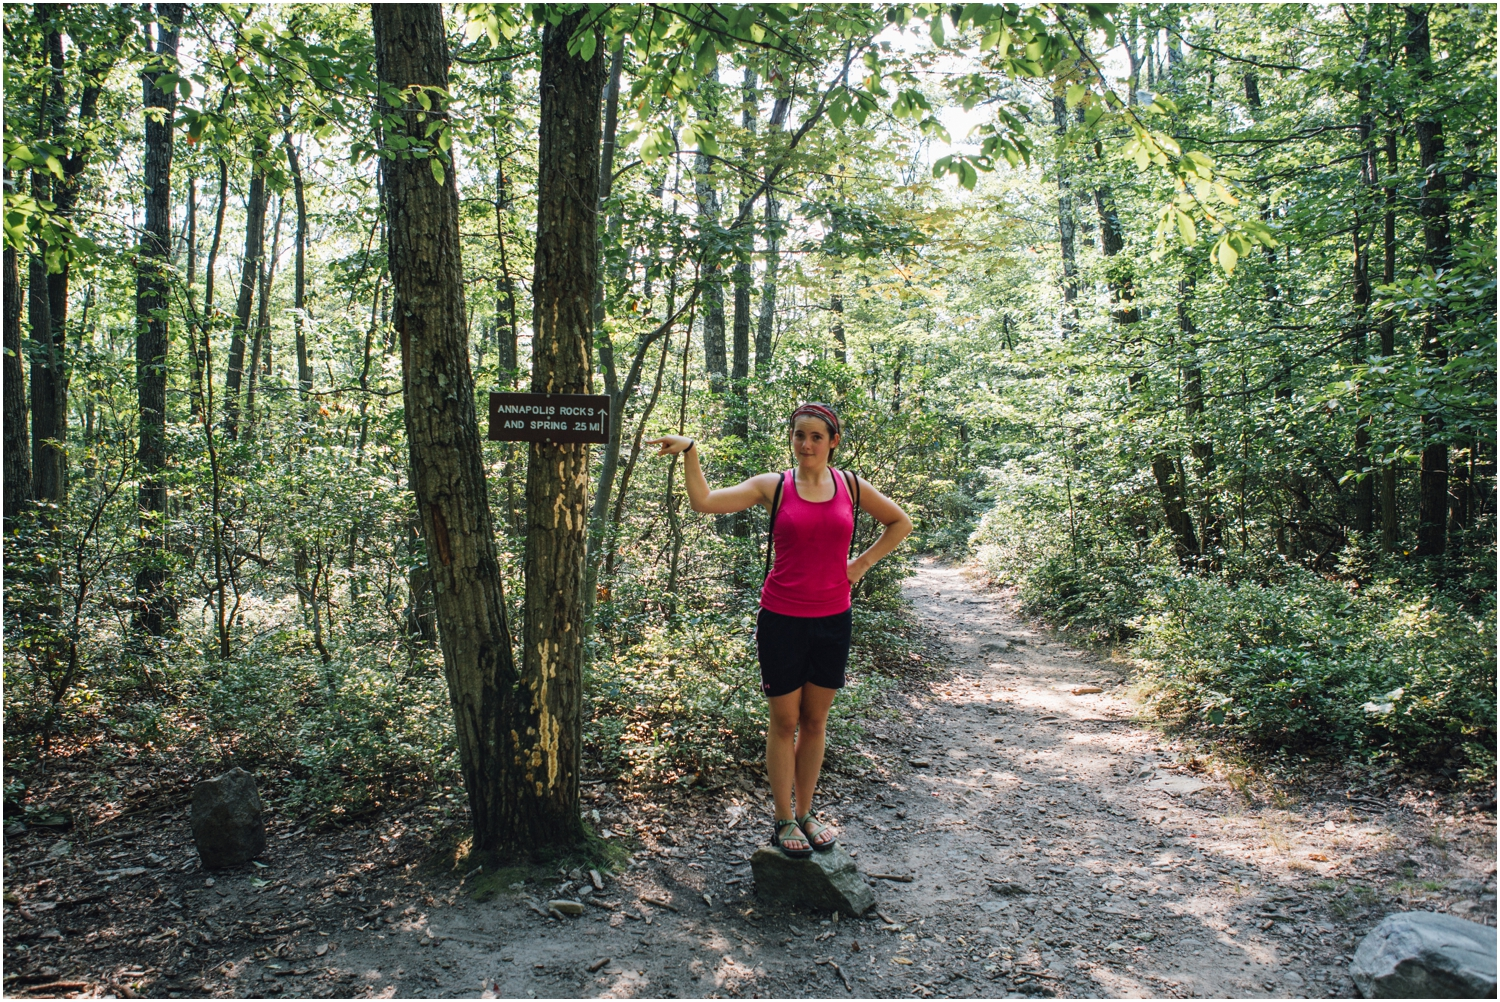 katy-sergent-photography-proposal-appalachian-trail-annapolis-rocks-adventurous-wedding-couples-intimate-elopement-hiking-backpacking-camping-photographer-johnson-city-tn-northeast-tennessee_0011.jpg